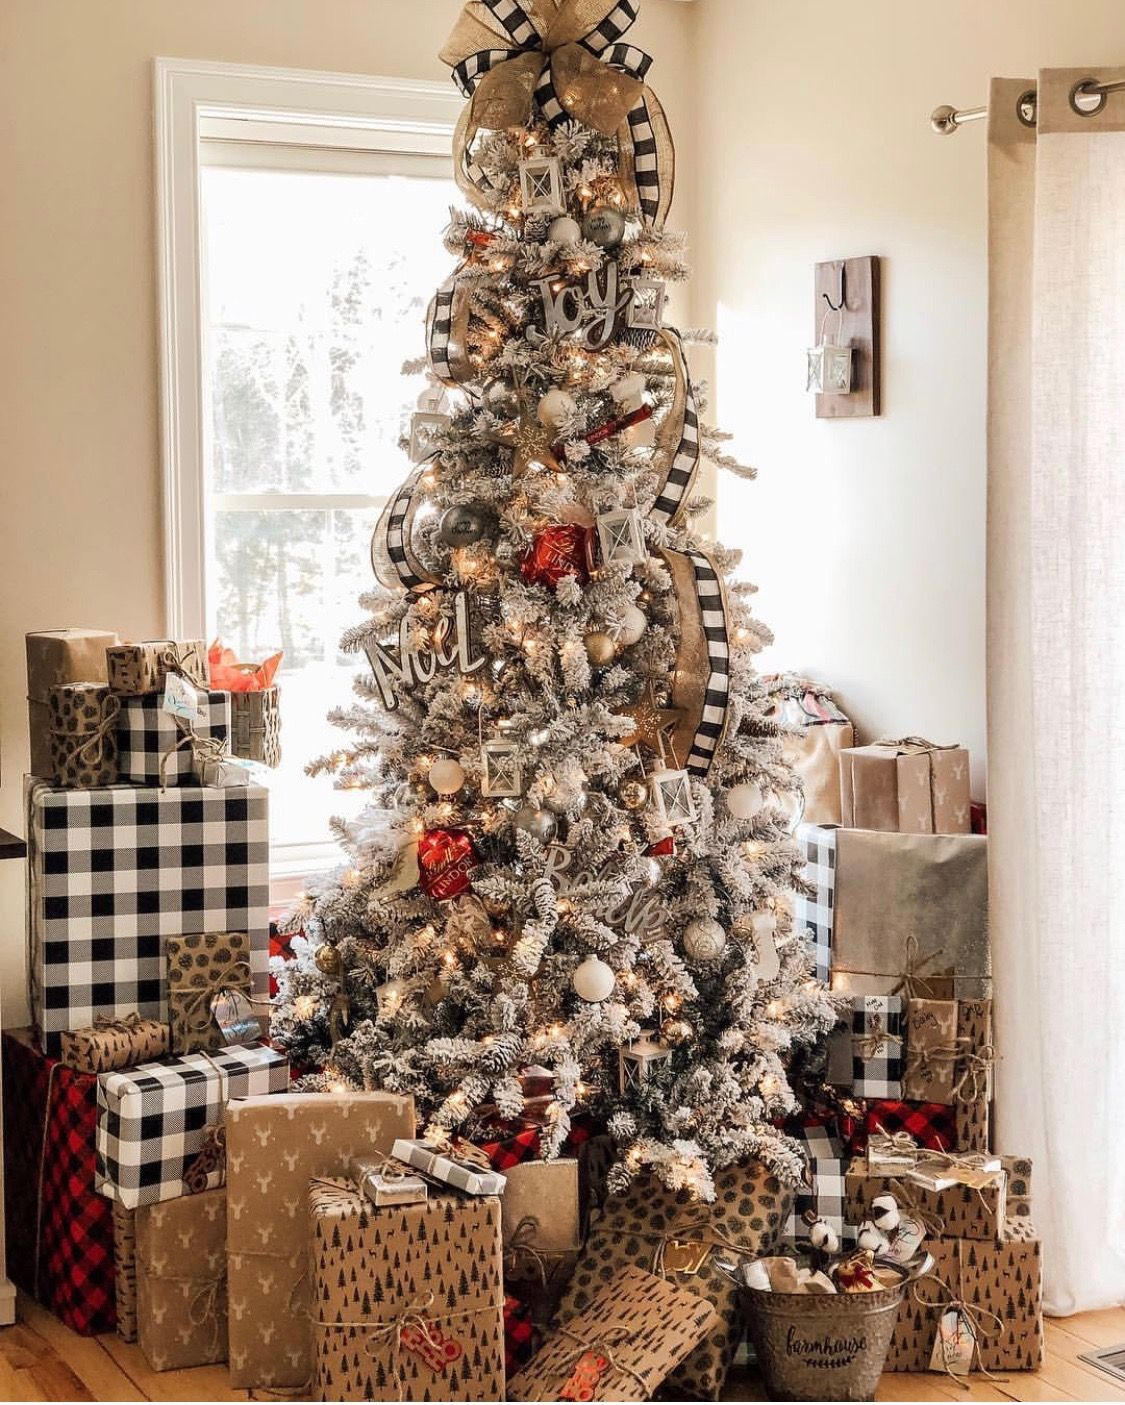 Pin By Kristi Hargrave On Christmas Flocked Christmas Trees Decorated Holiday Entertaining Christmas Flocked Christmas Trees